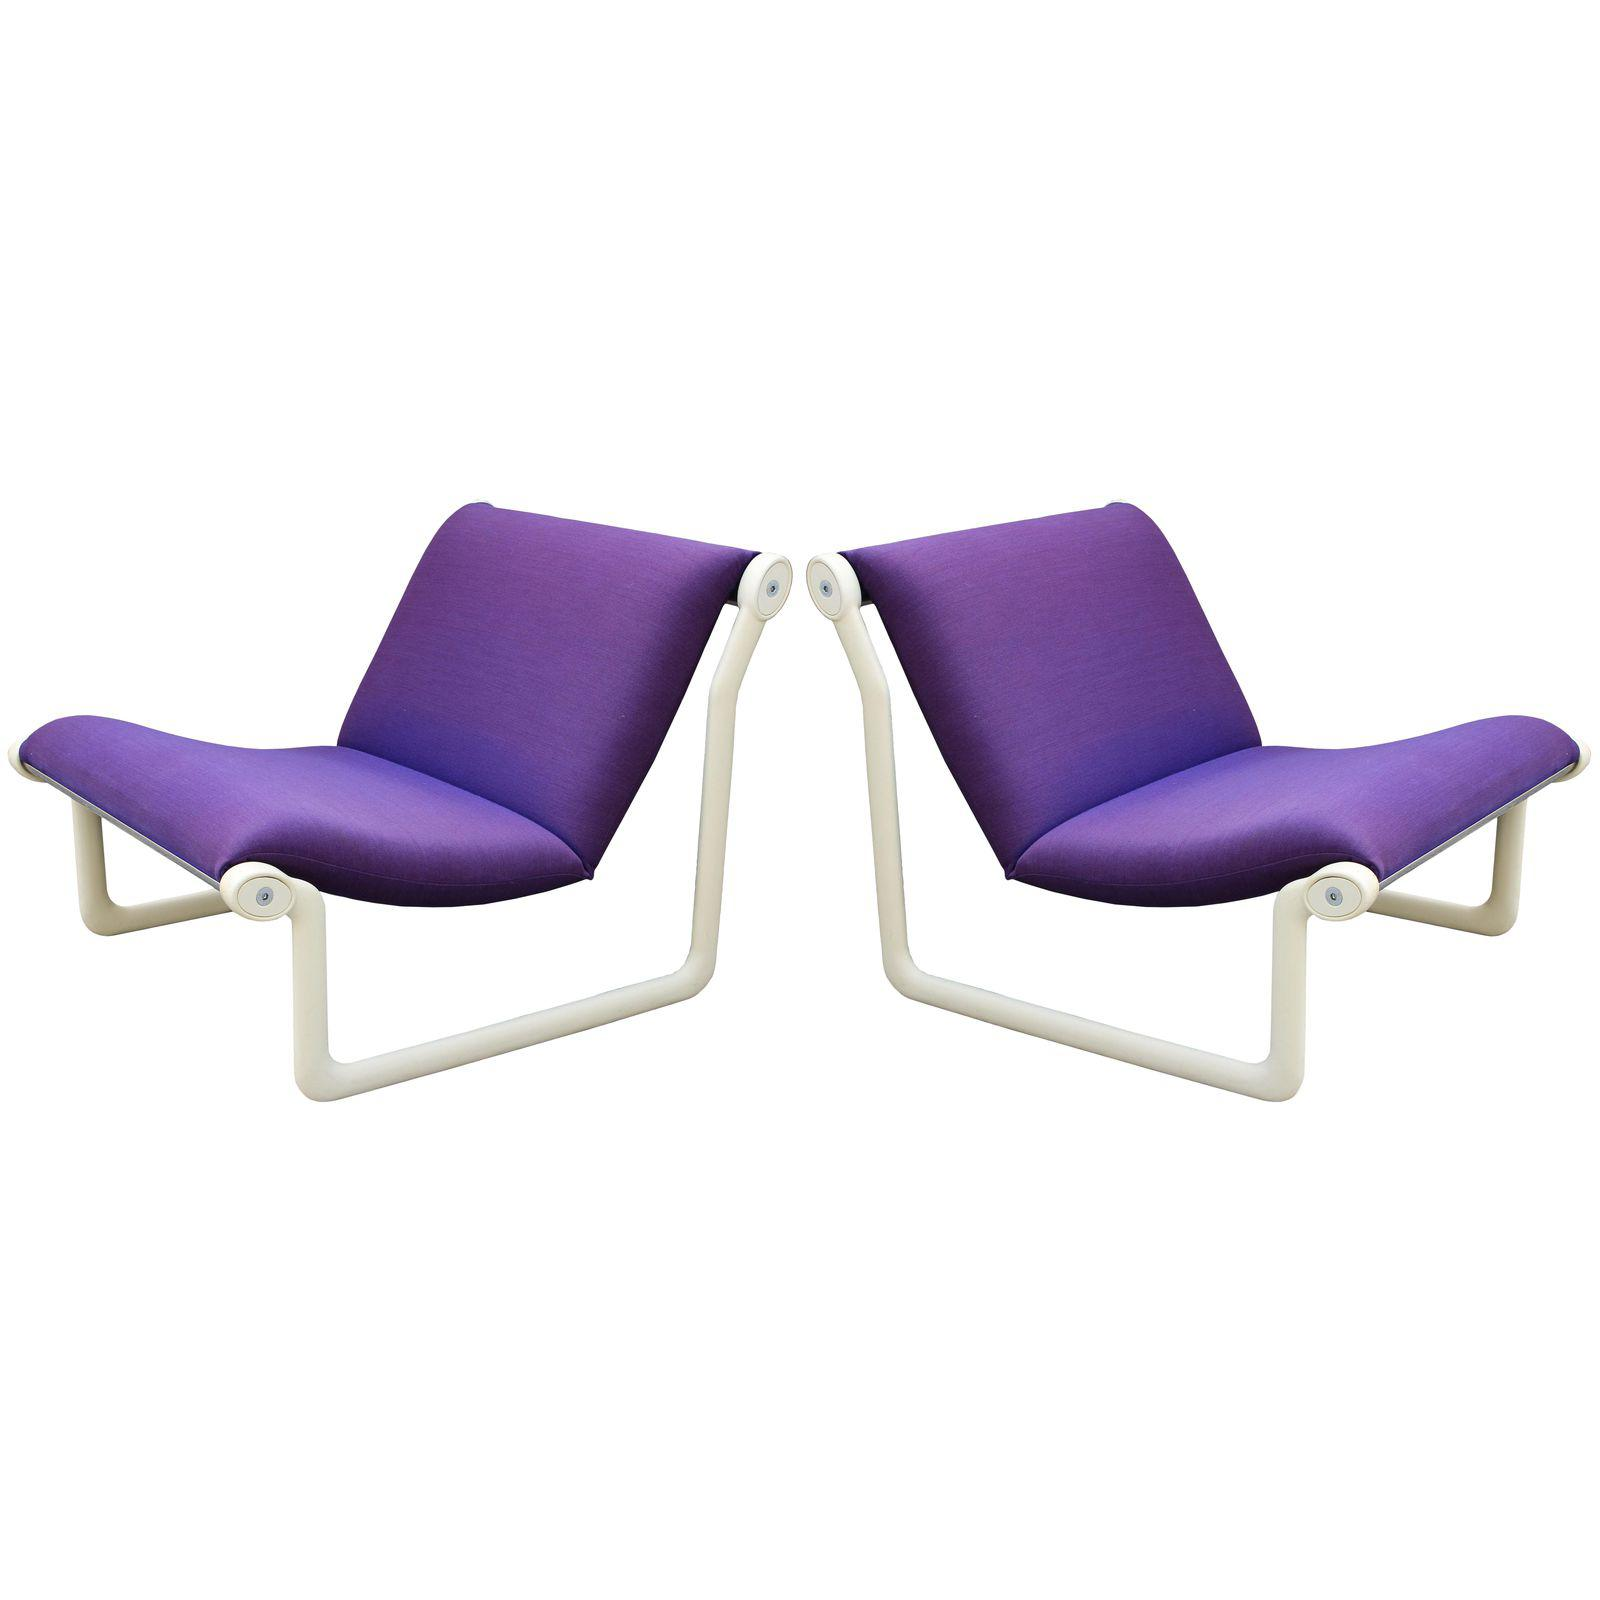 pair-of-hannah-morrison-sling-chairs-0110